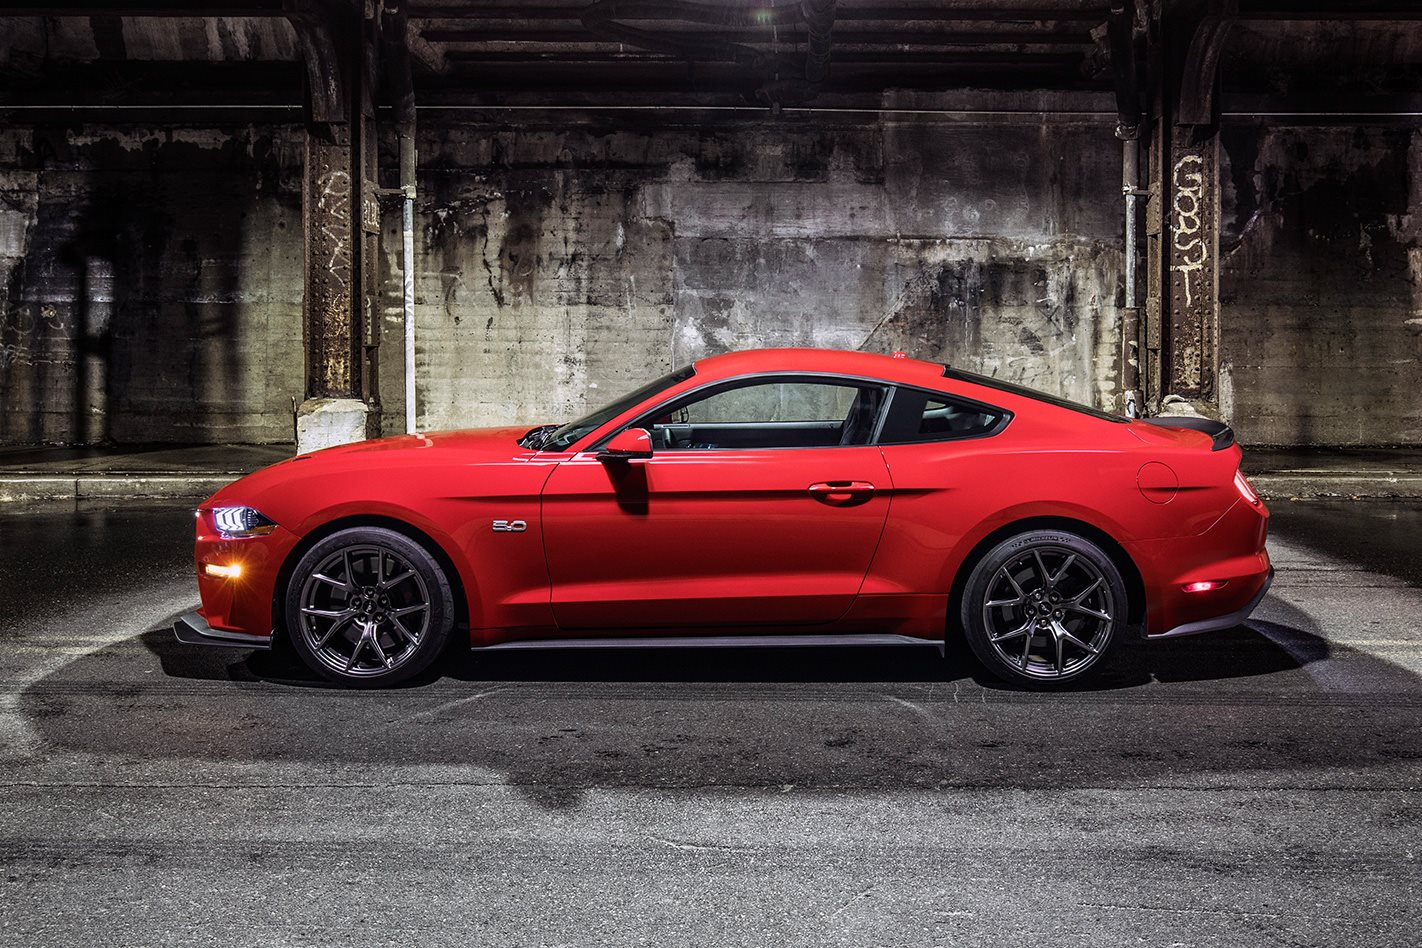 2018-Ford-Mustang-Performance-Pack-side.jpg